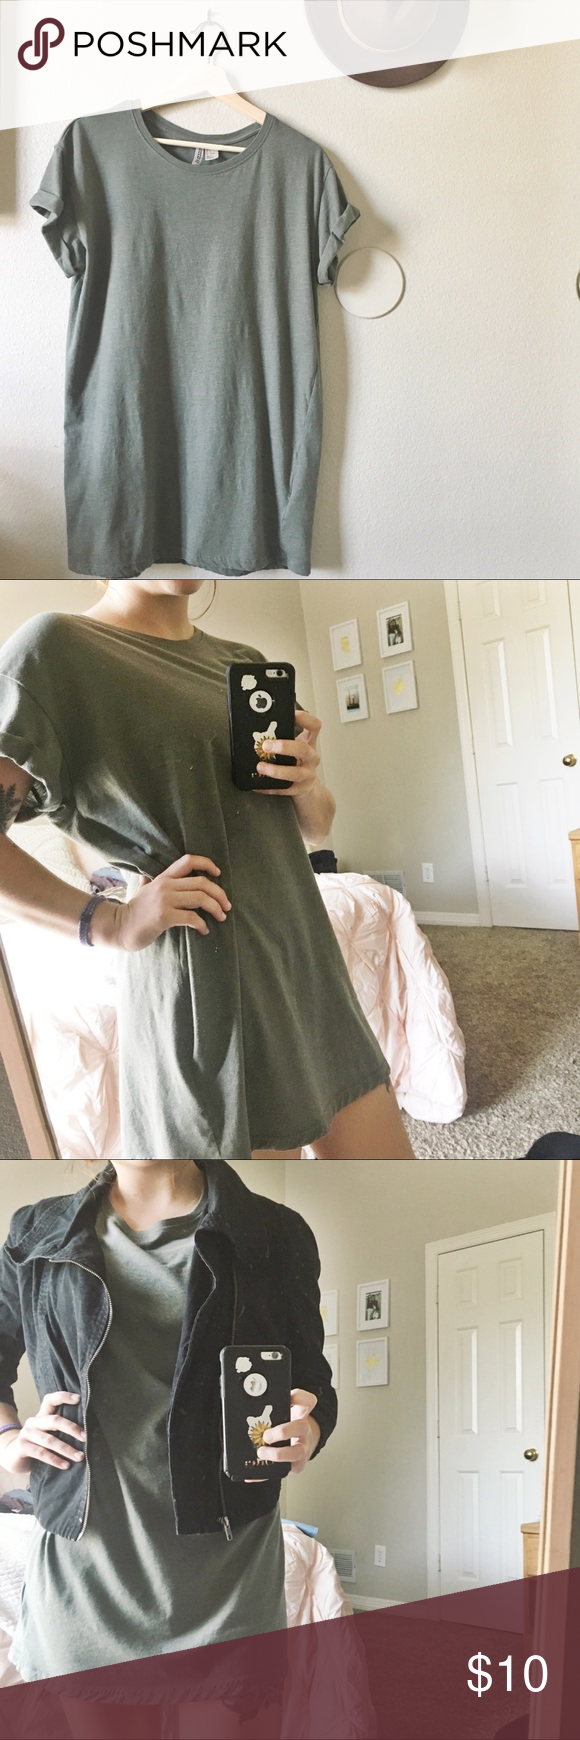 8c86317d2044f H M olive green T-shirt dress Worn once! Can dress up or down. The jacket  in the model picture is also for sale. H M Dresses Mini